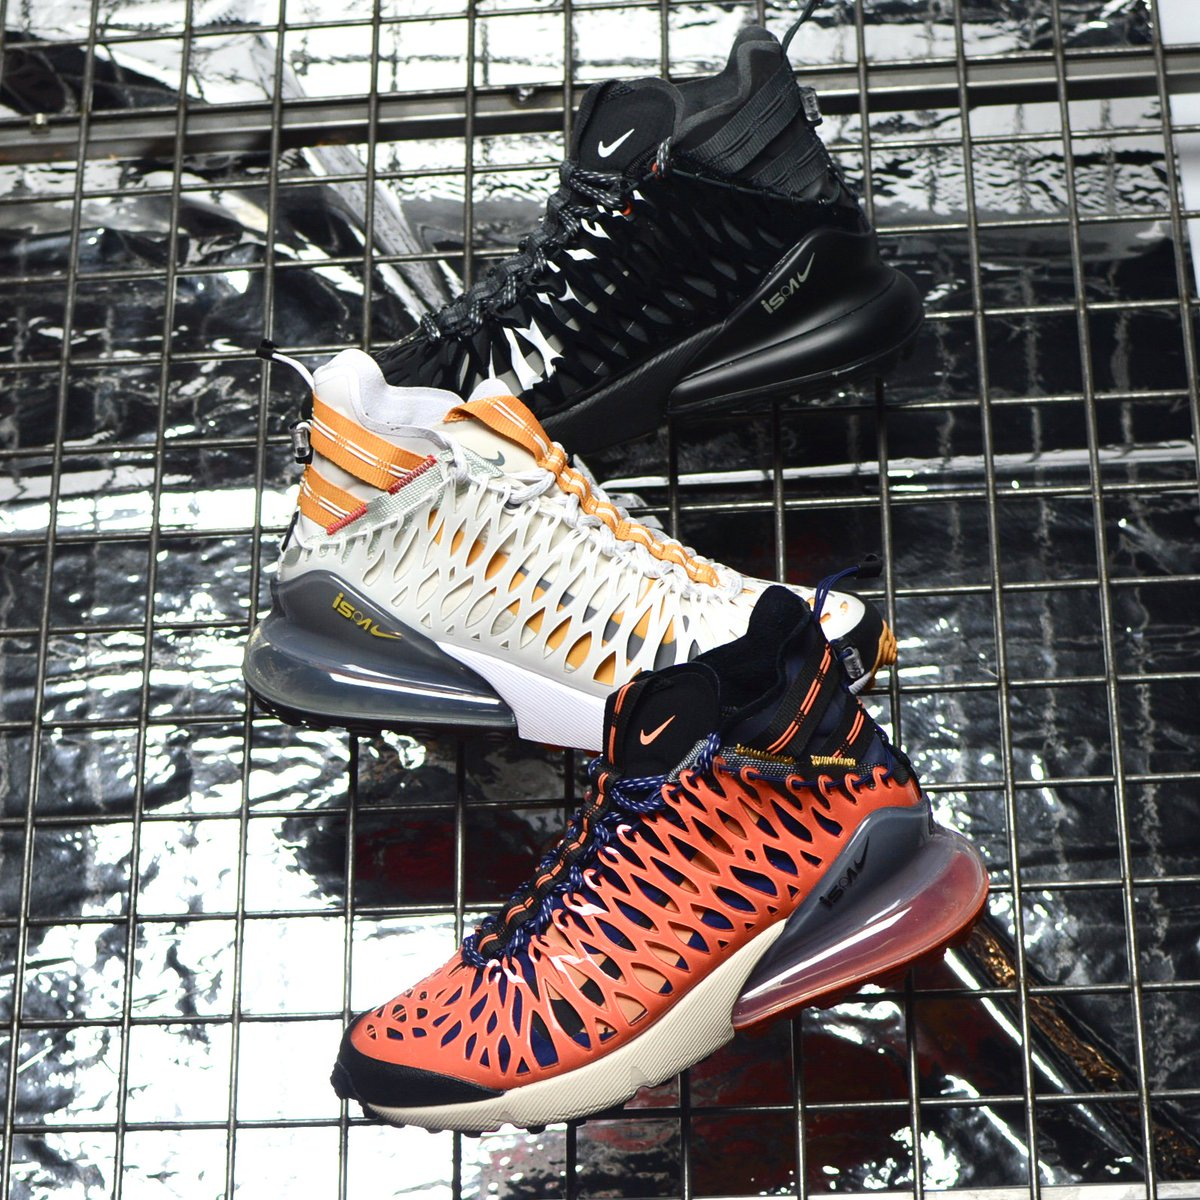 3fc2f57ced The project ISPA took over the Air Max 270 and here s the result. . Launch